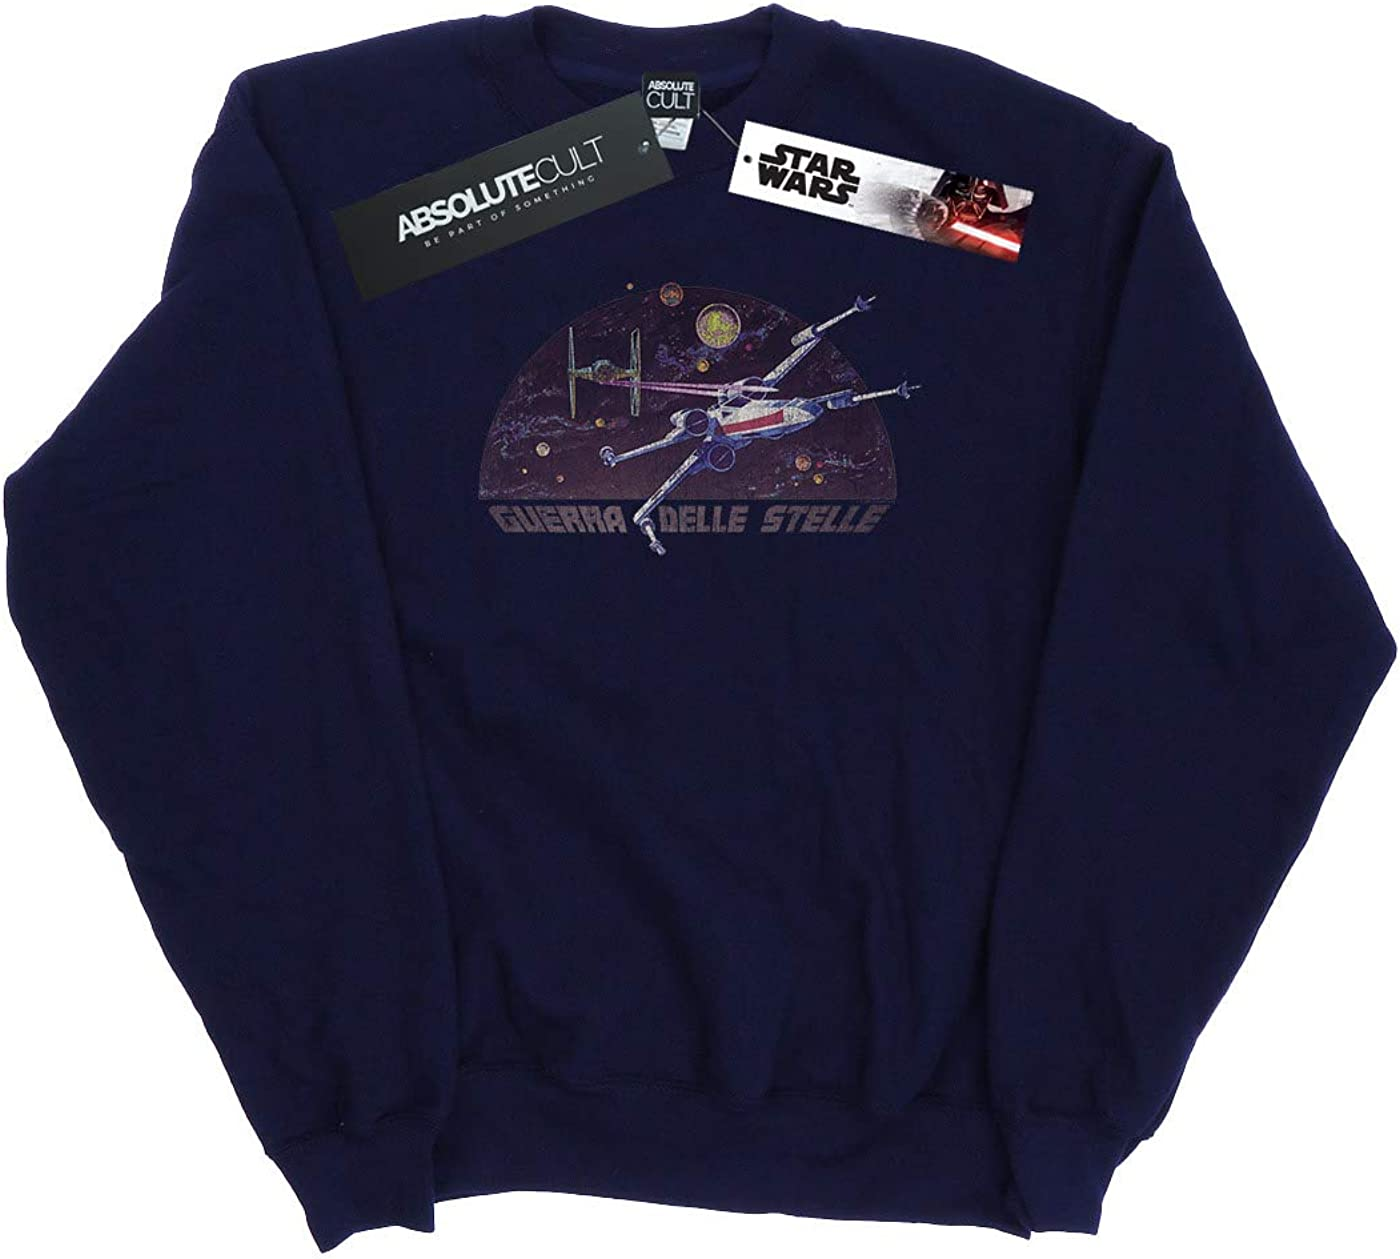 Star Wars Girls Italian Title X-Wing Sweatshirt